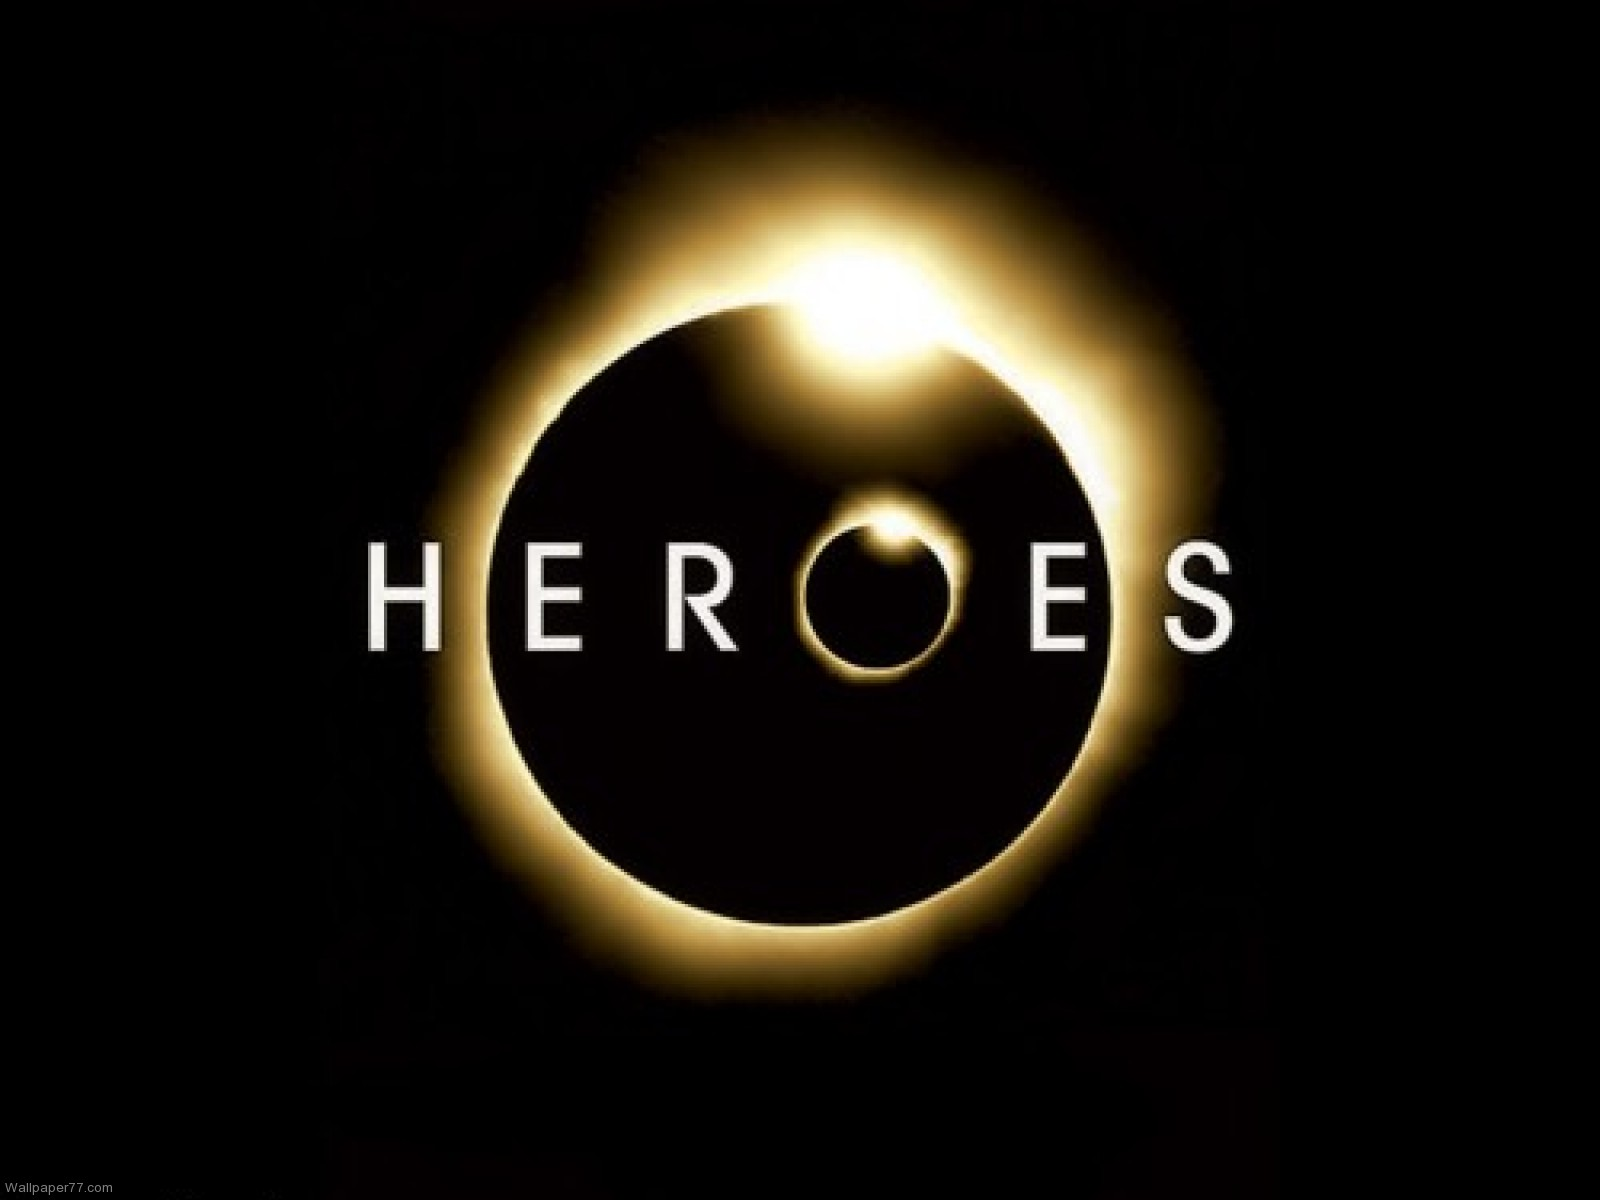 Free download heroes logo 1600x1200 pixels wallpapers tagged.